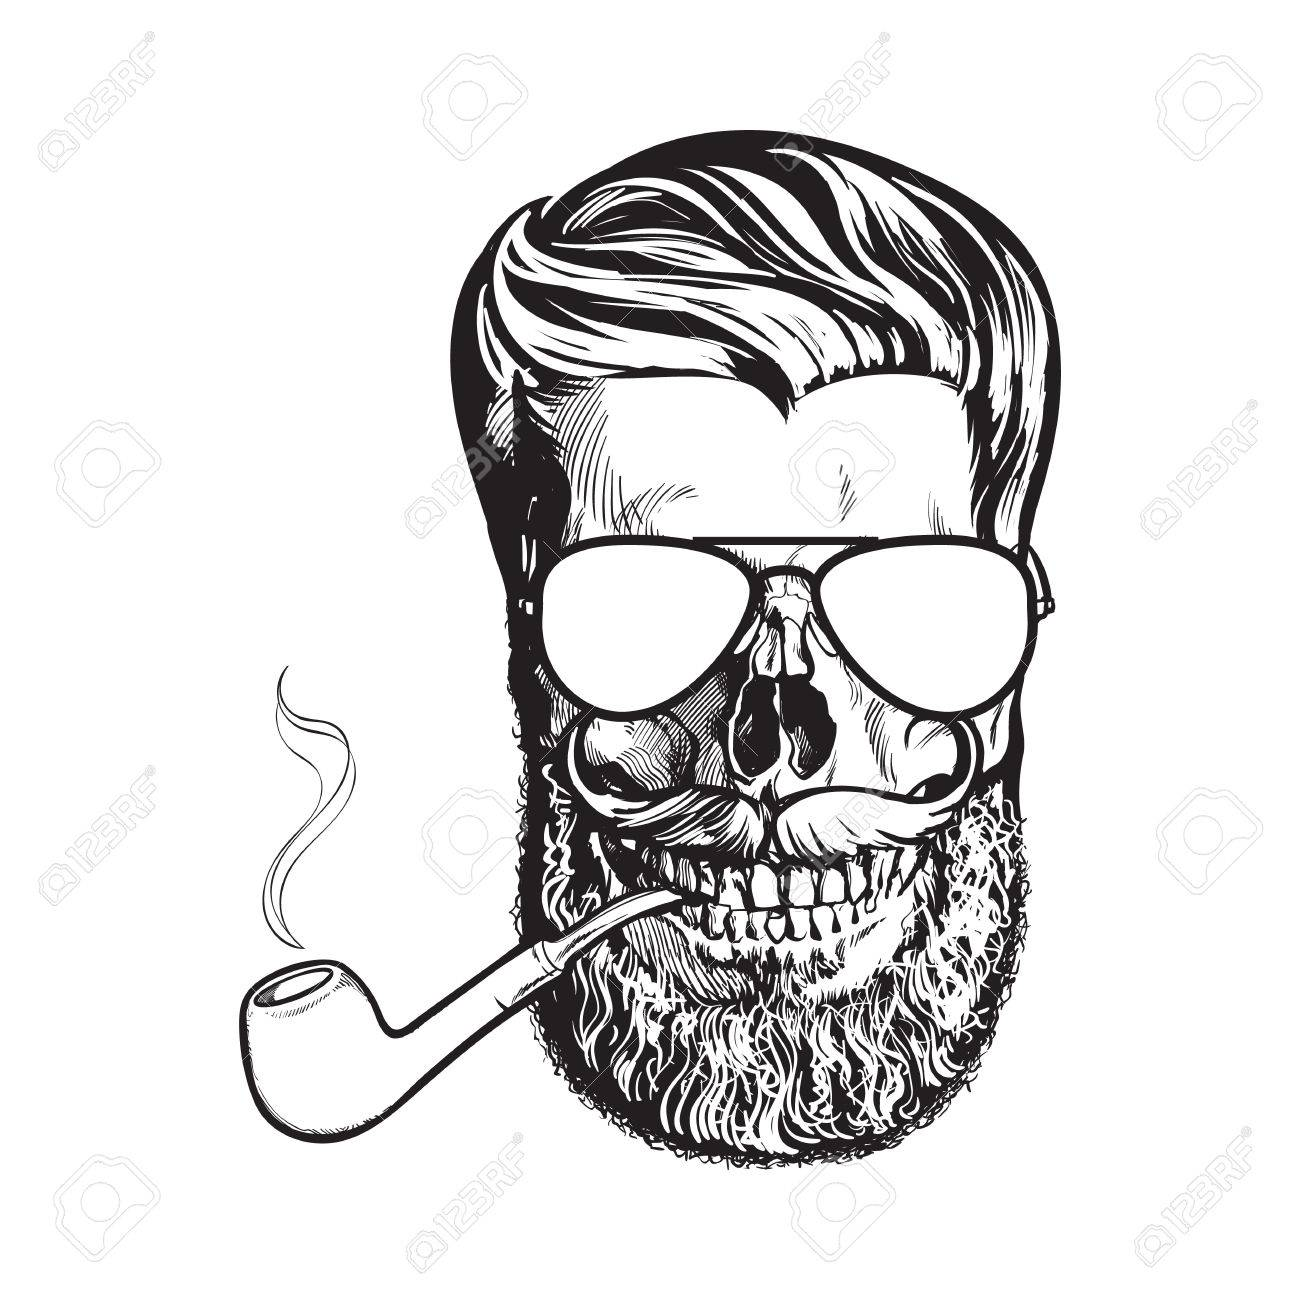 1300x1300 Human Skull With Hipster Beard, Wearing Aviator Sunglasses